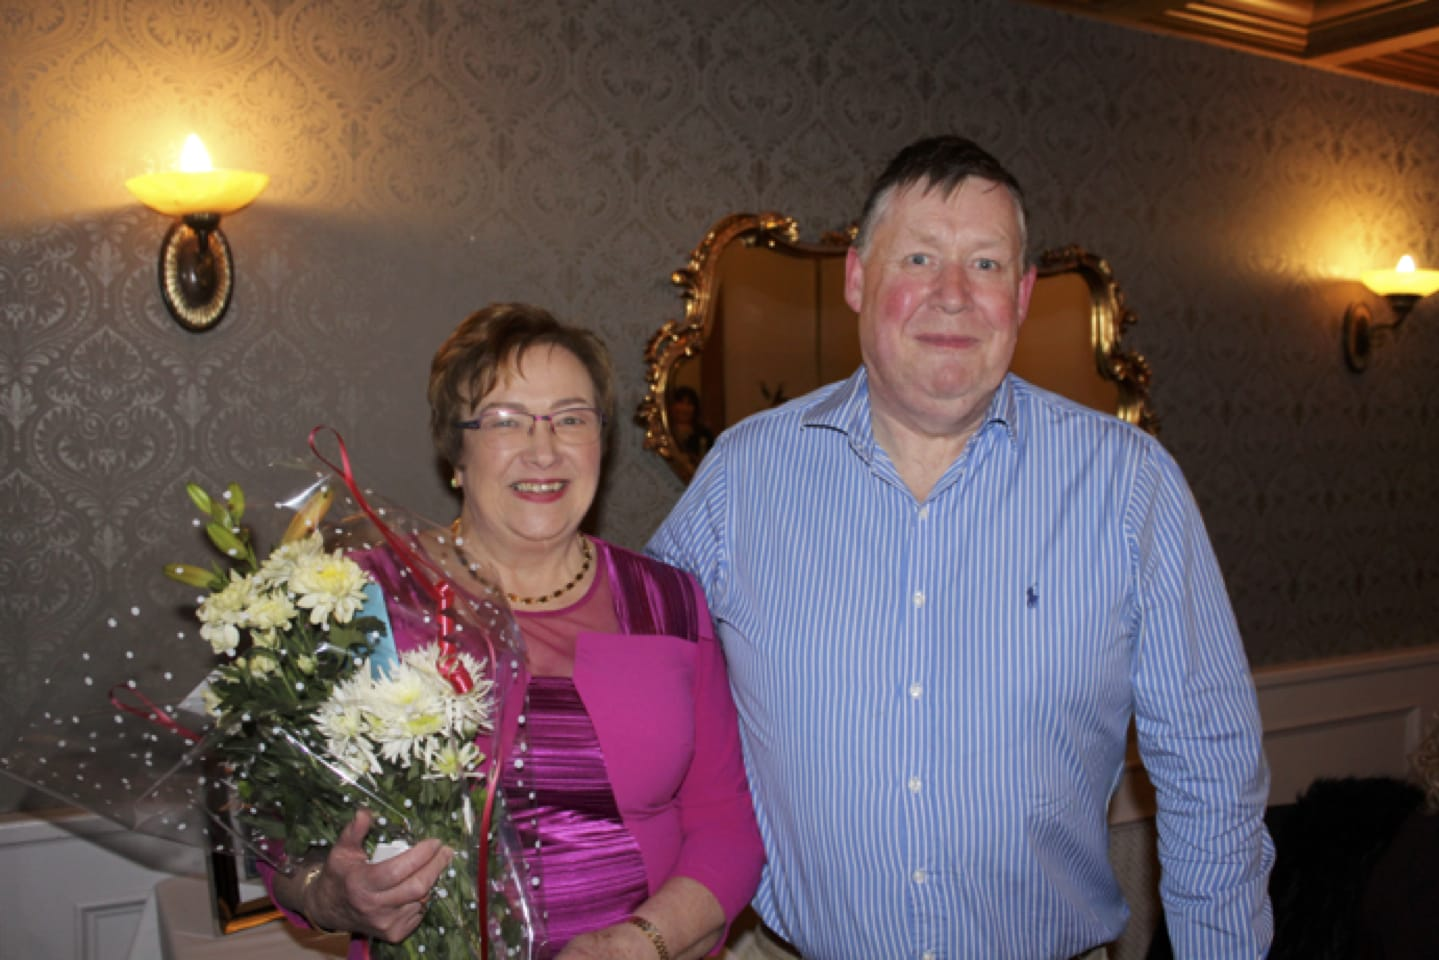 Feb 2017: Donal Enright presenting Carmel Harnett with a Bouquet of flowers at her recent Retirement Party